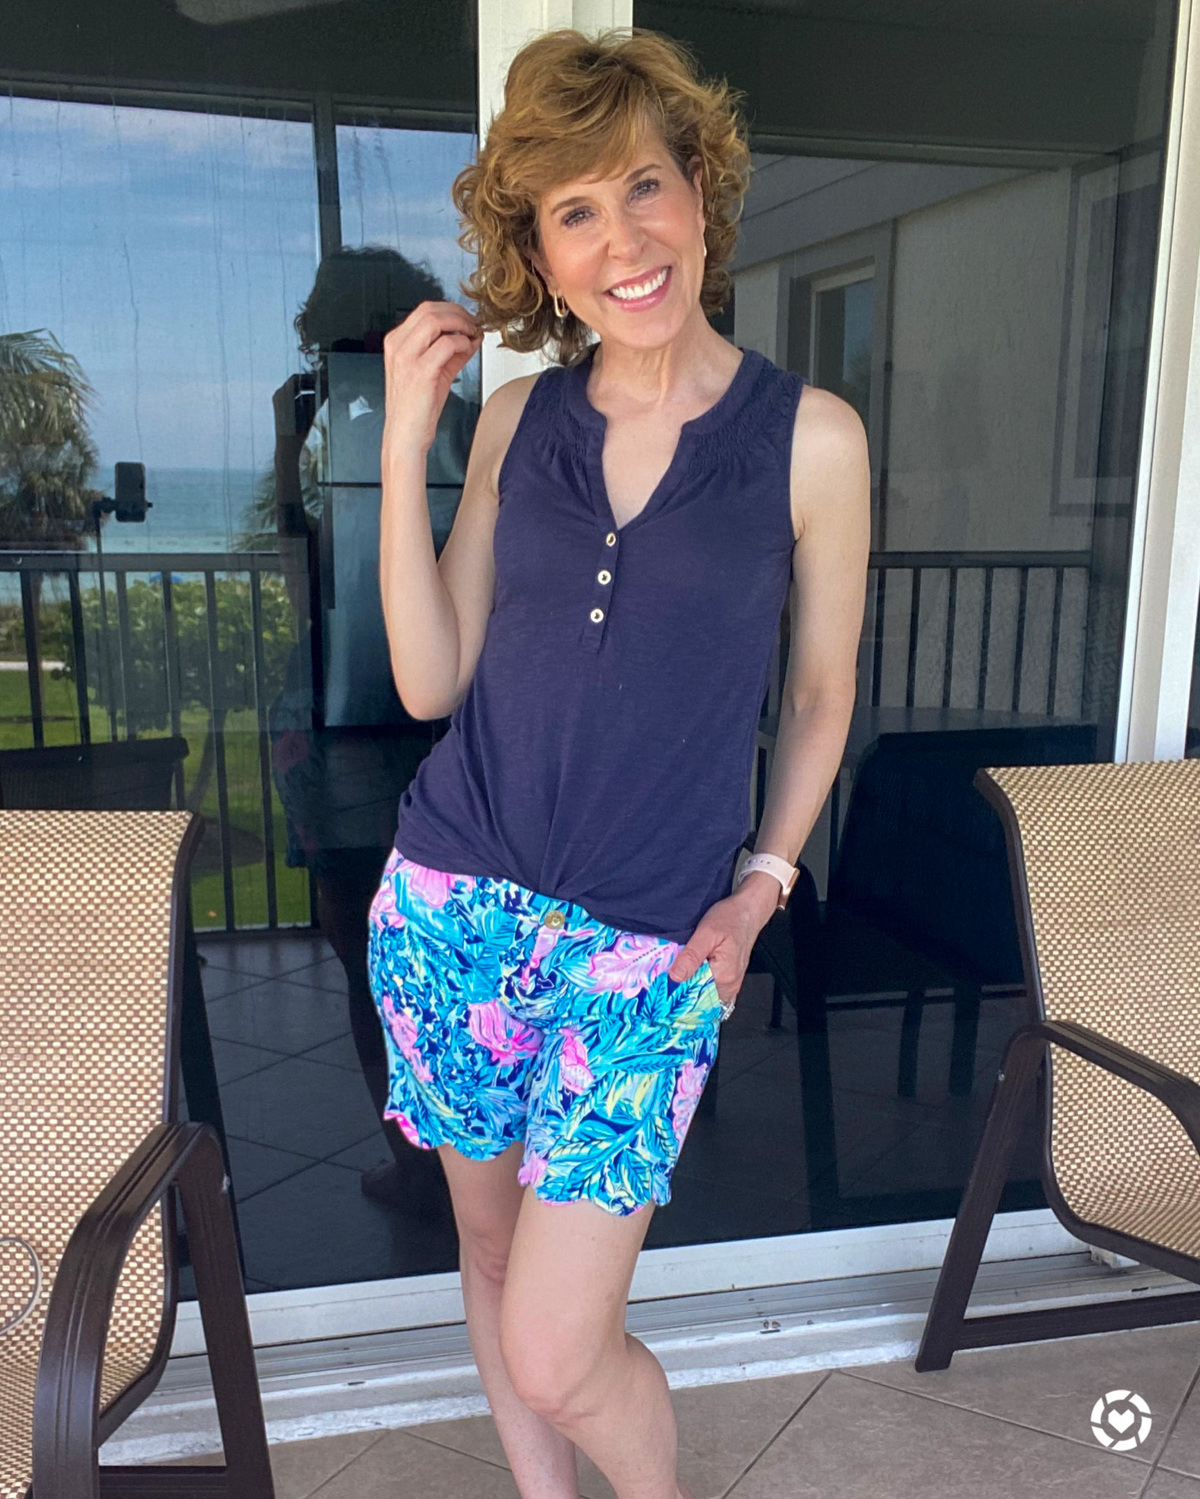 woman wearing lilly pulitzer short and top standing on patio